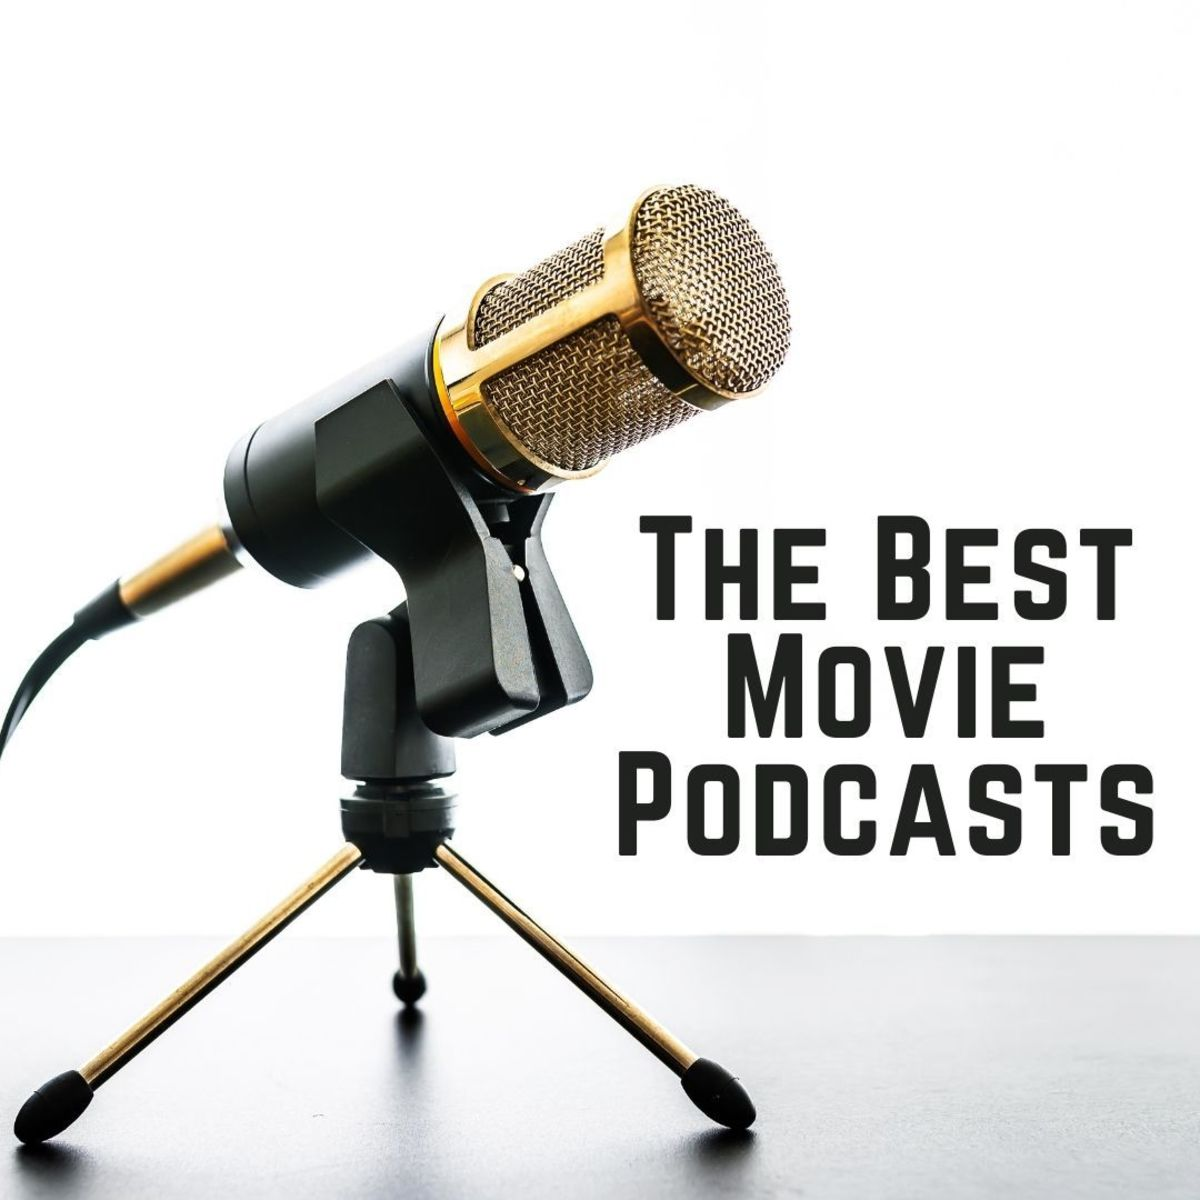 The top 5 movie review podcasts